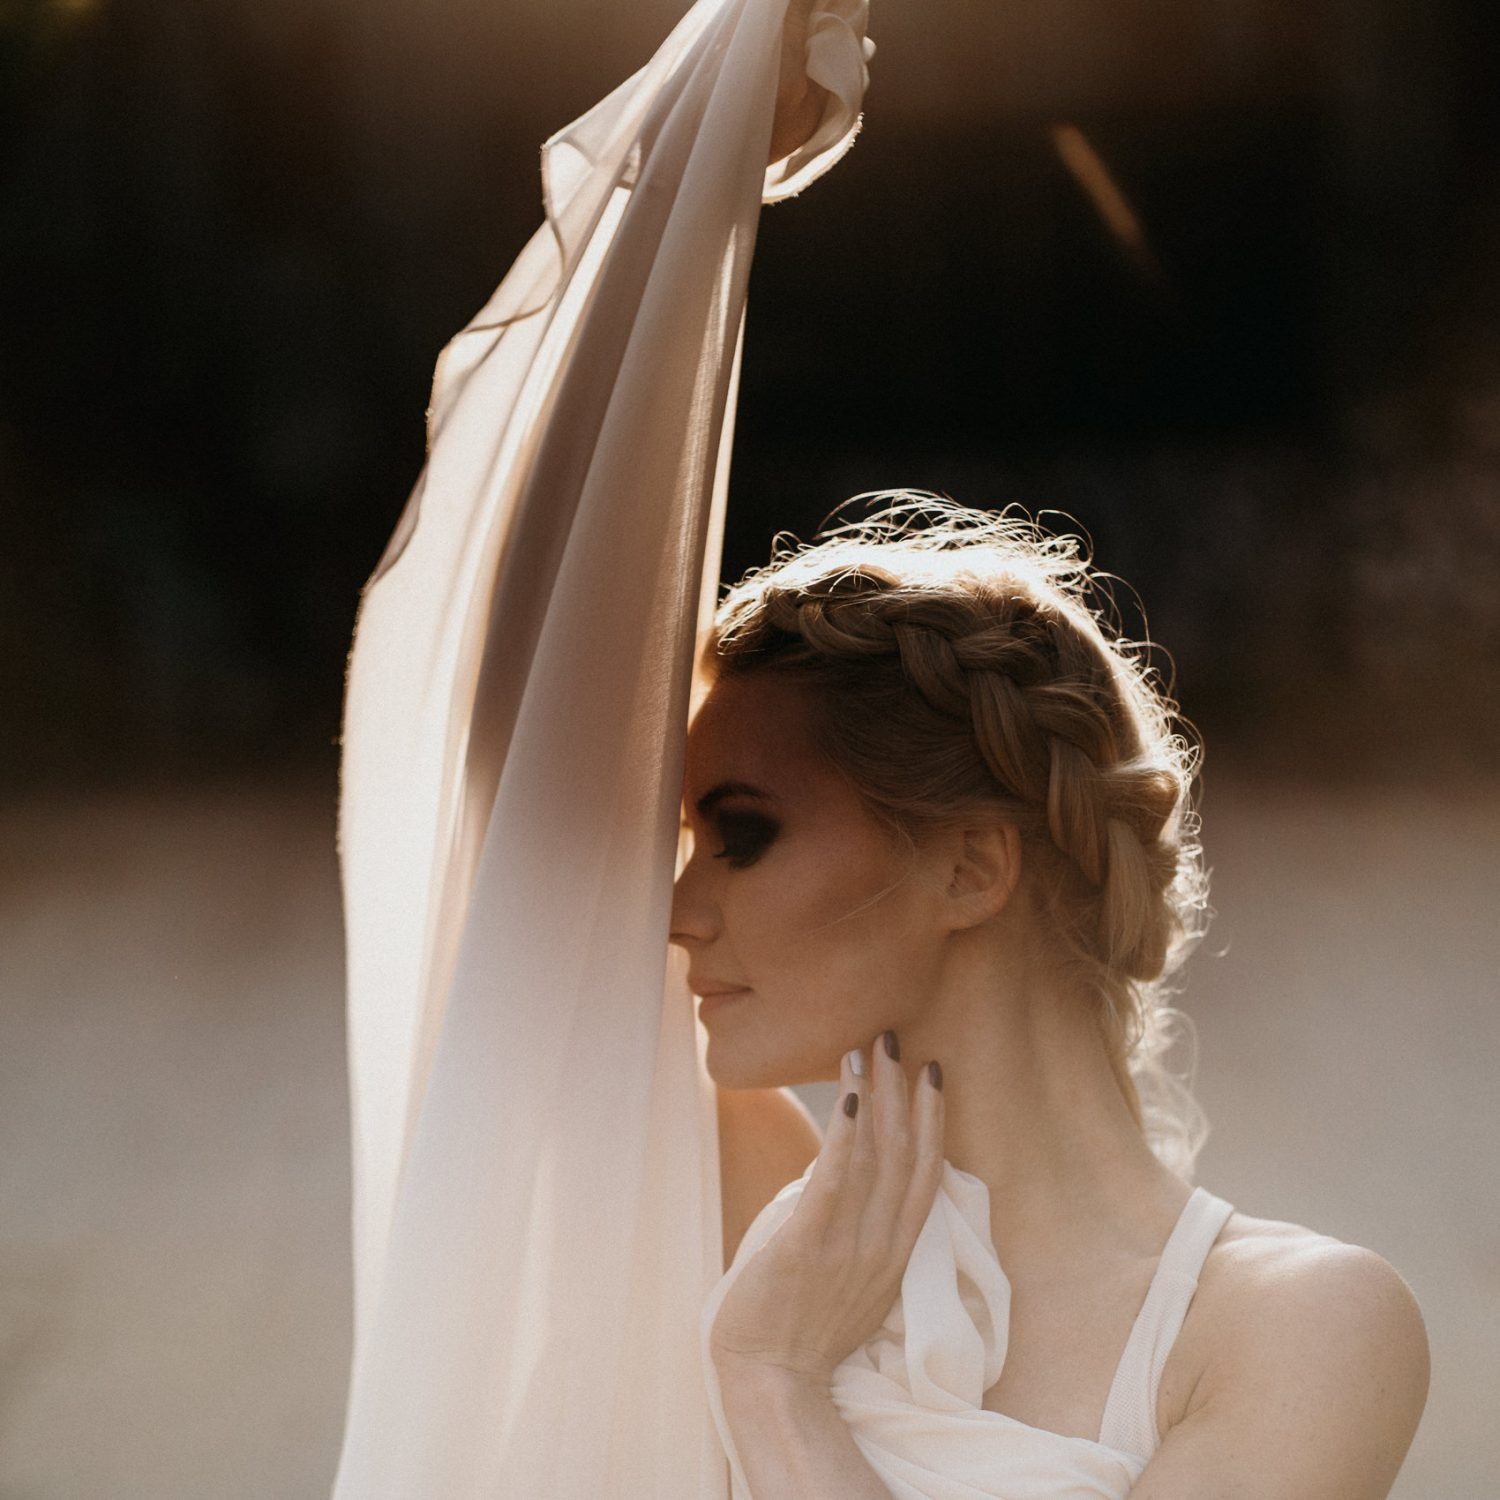 Contemporary dance photoshoot outdoors by Liene Grava